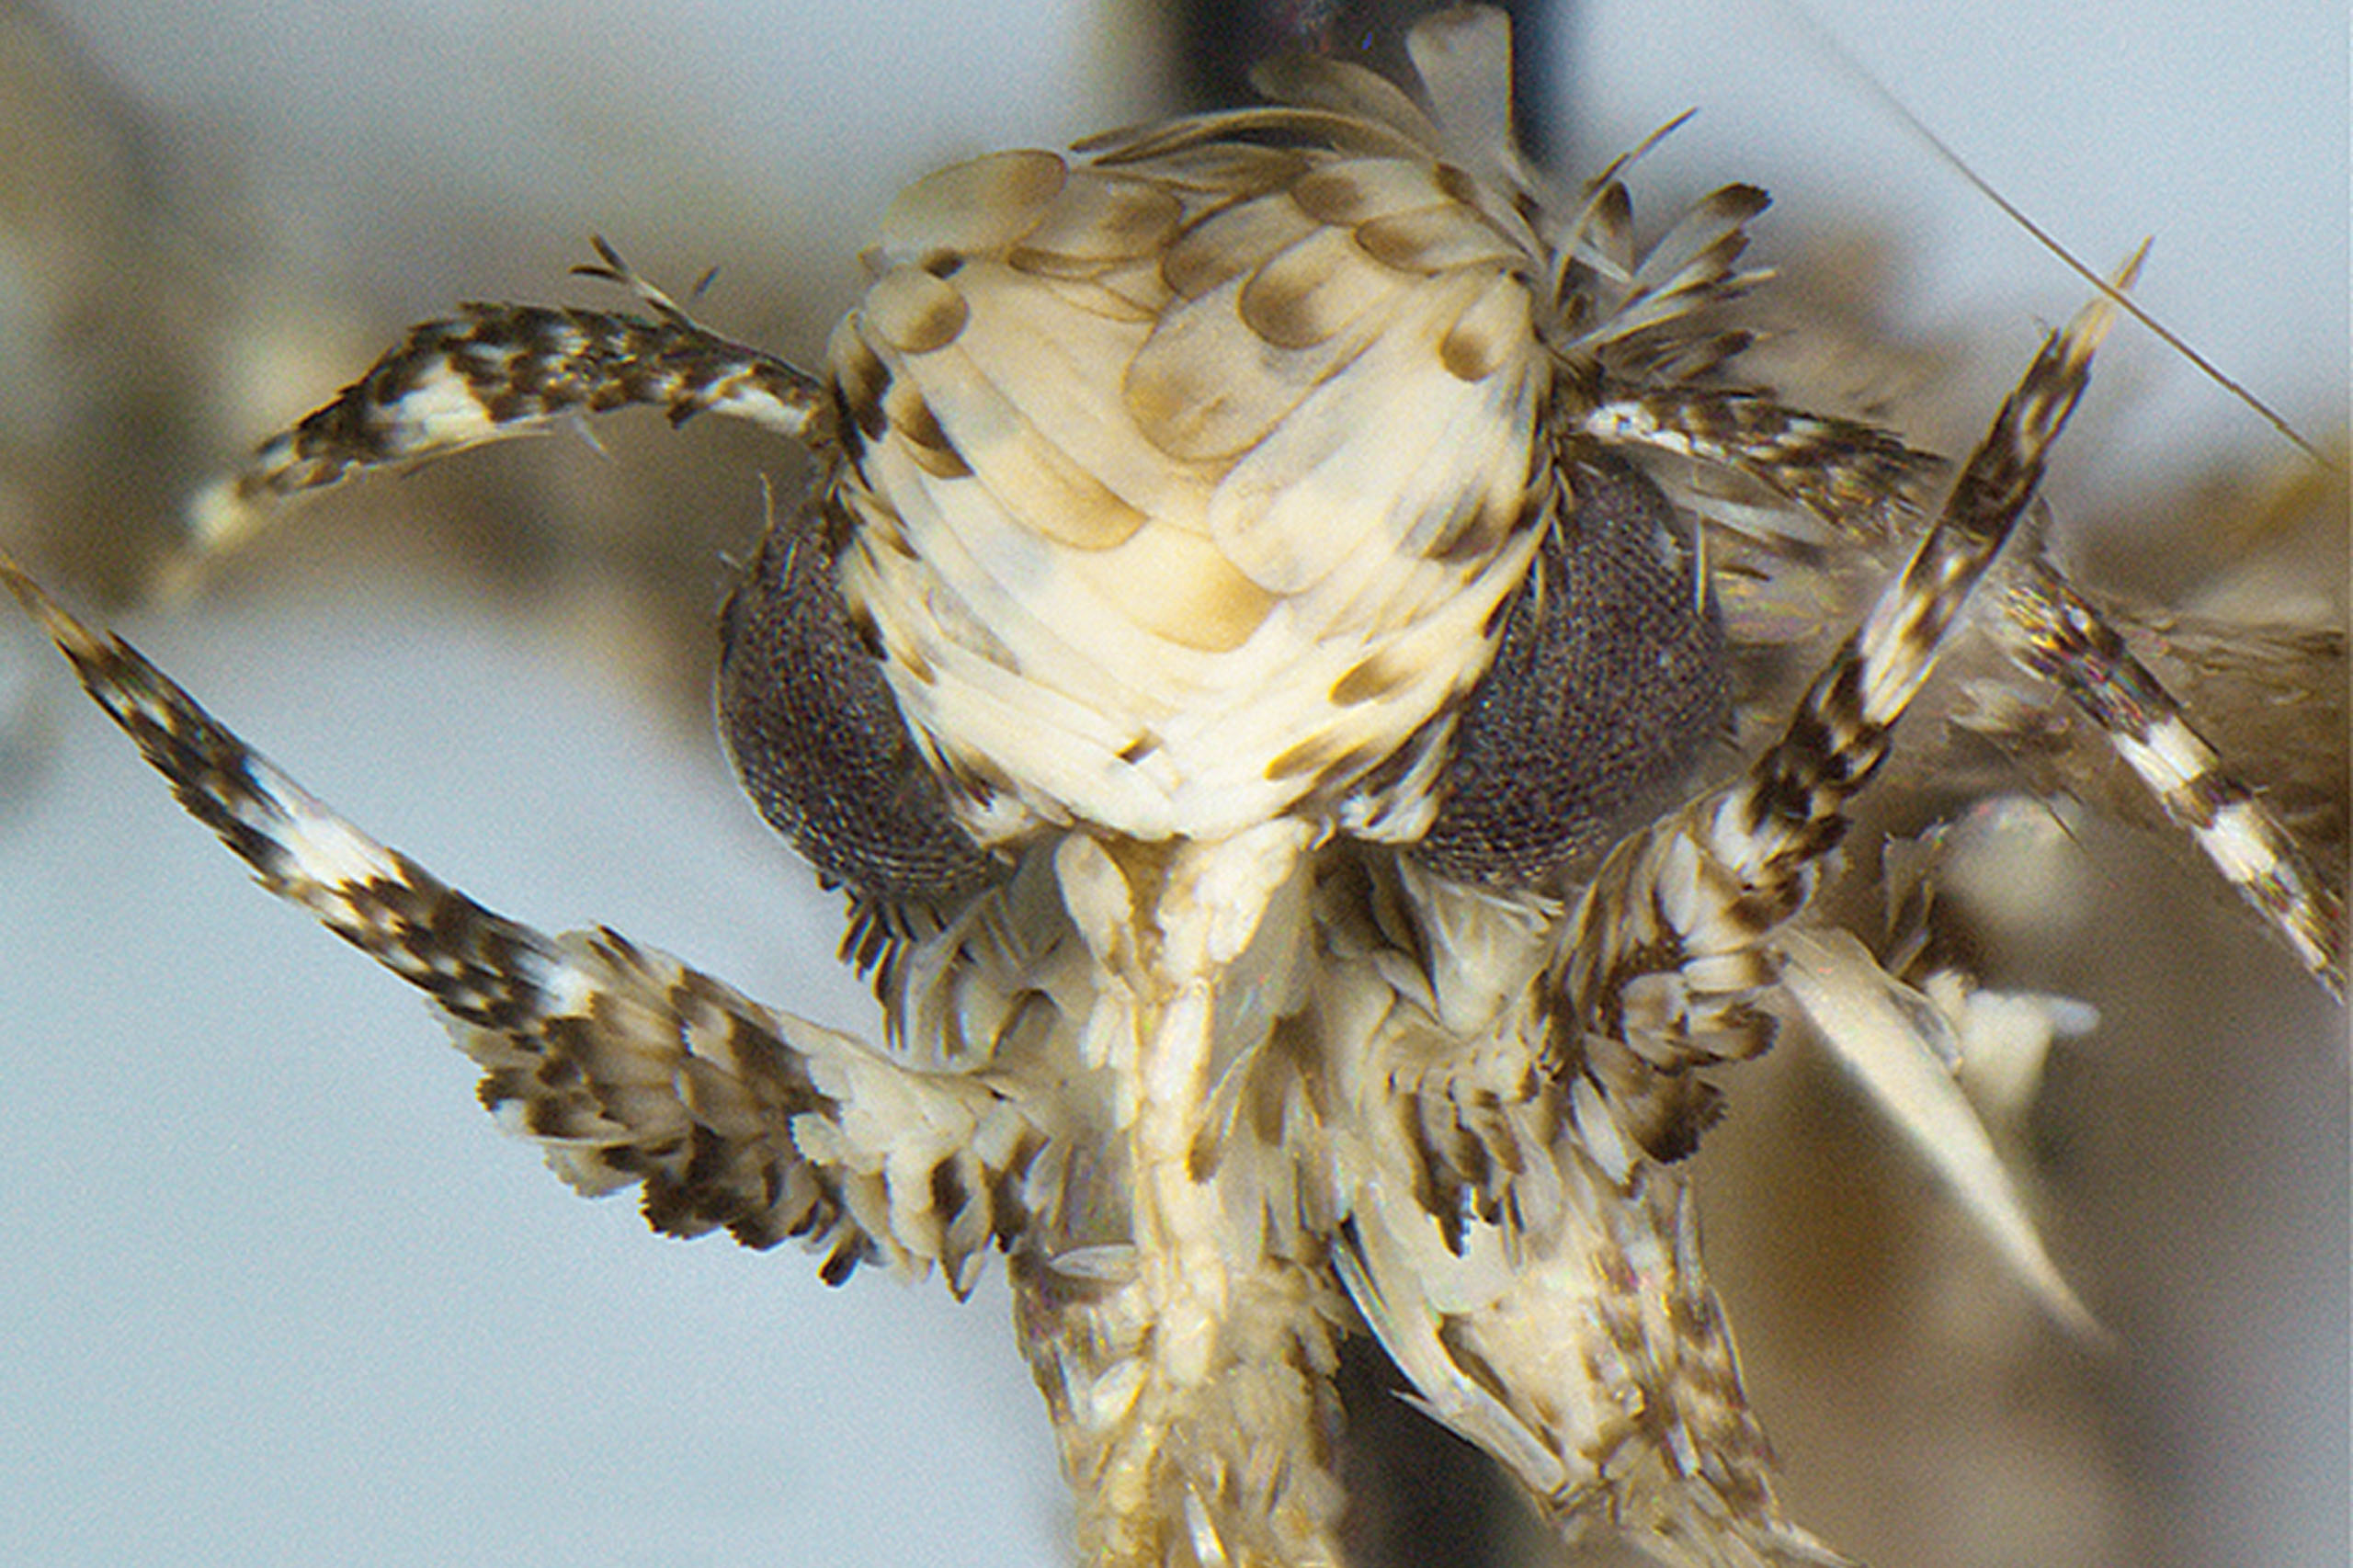 Moth species Neopalpa donaldtrumpi named after Donald Trump